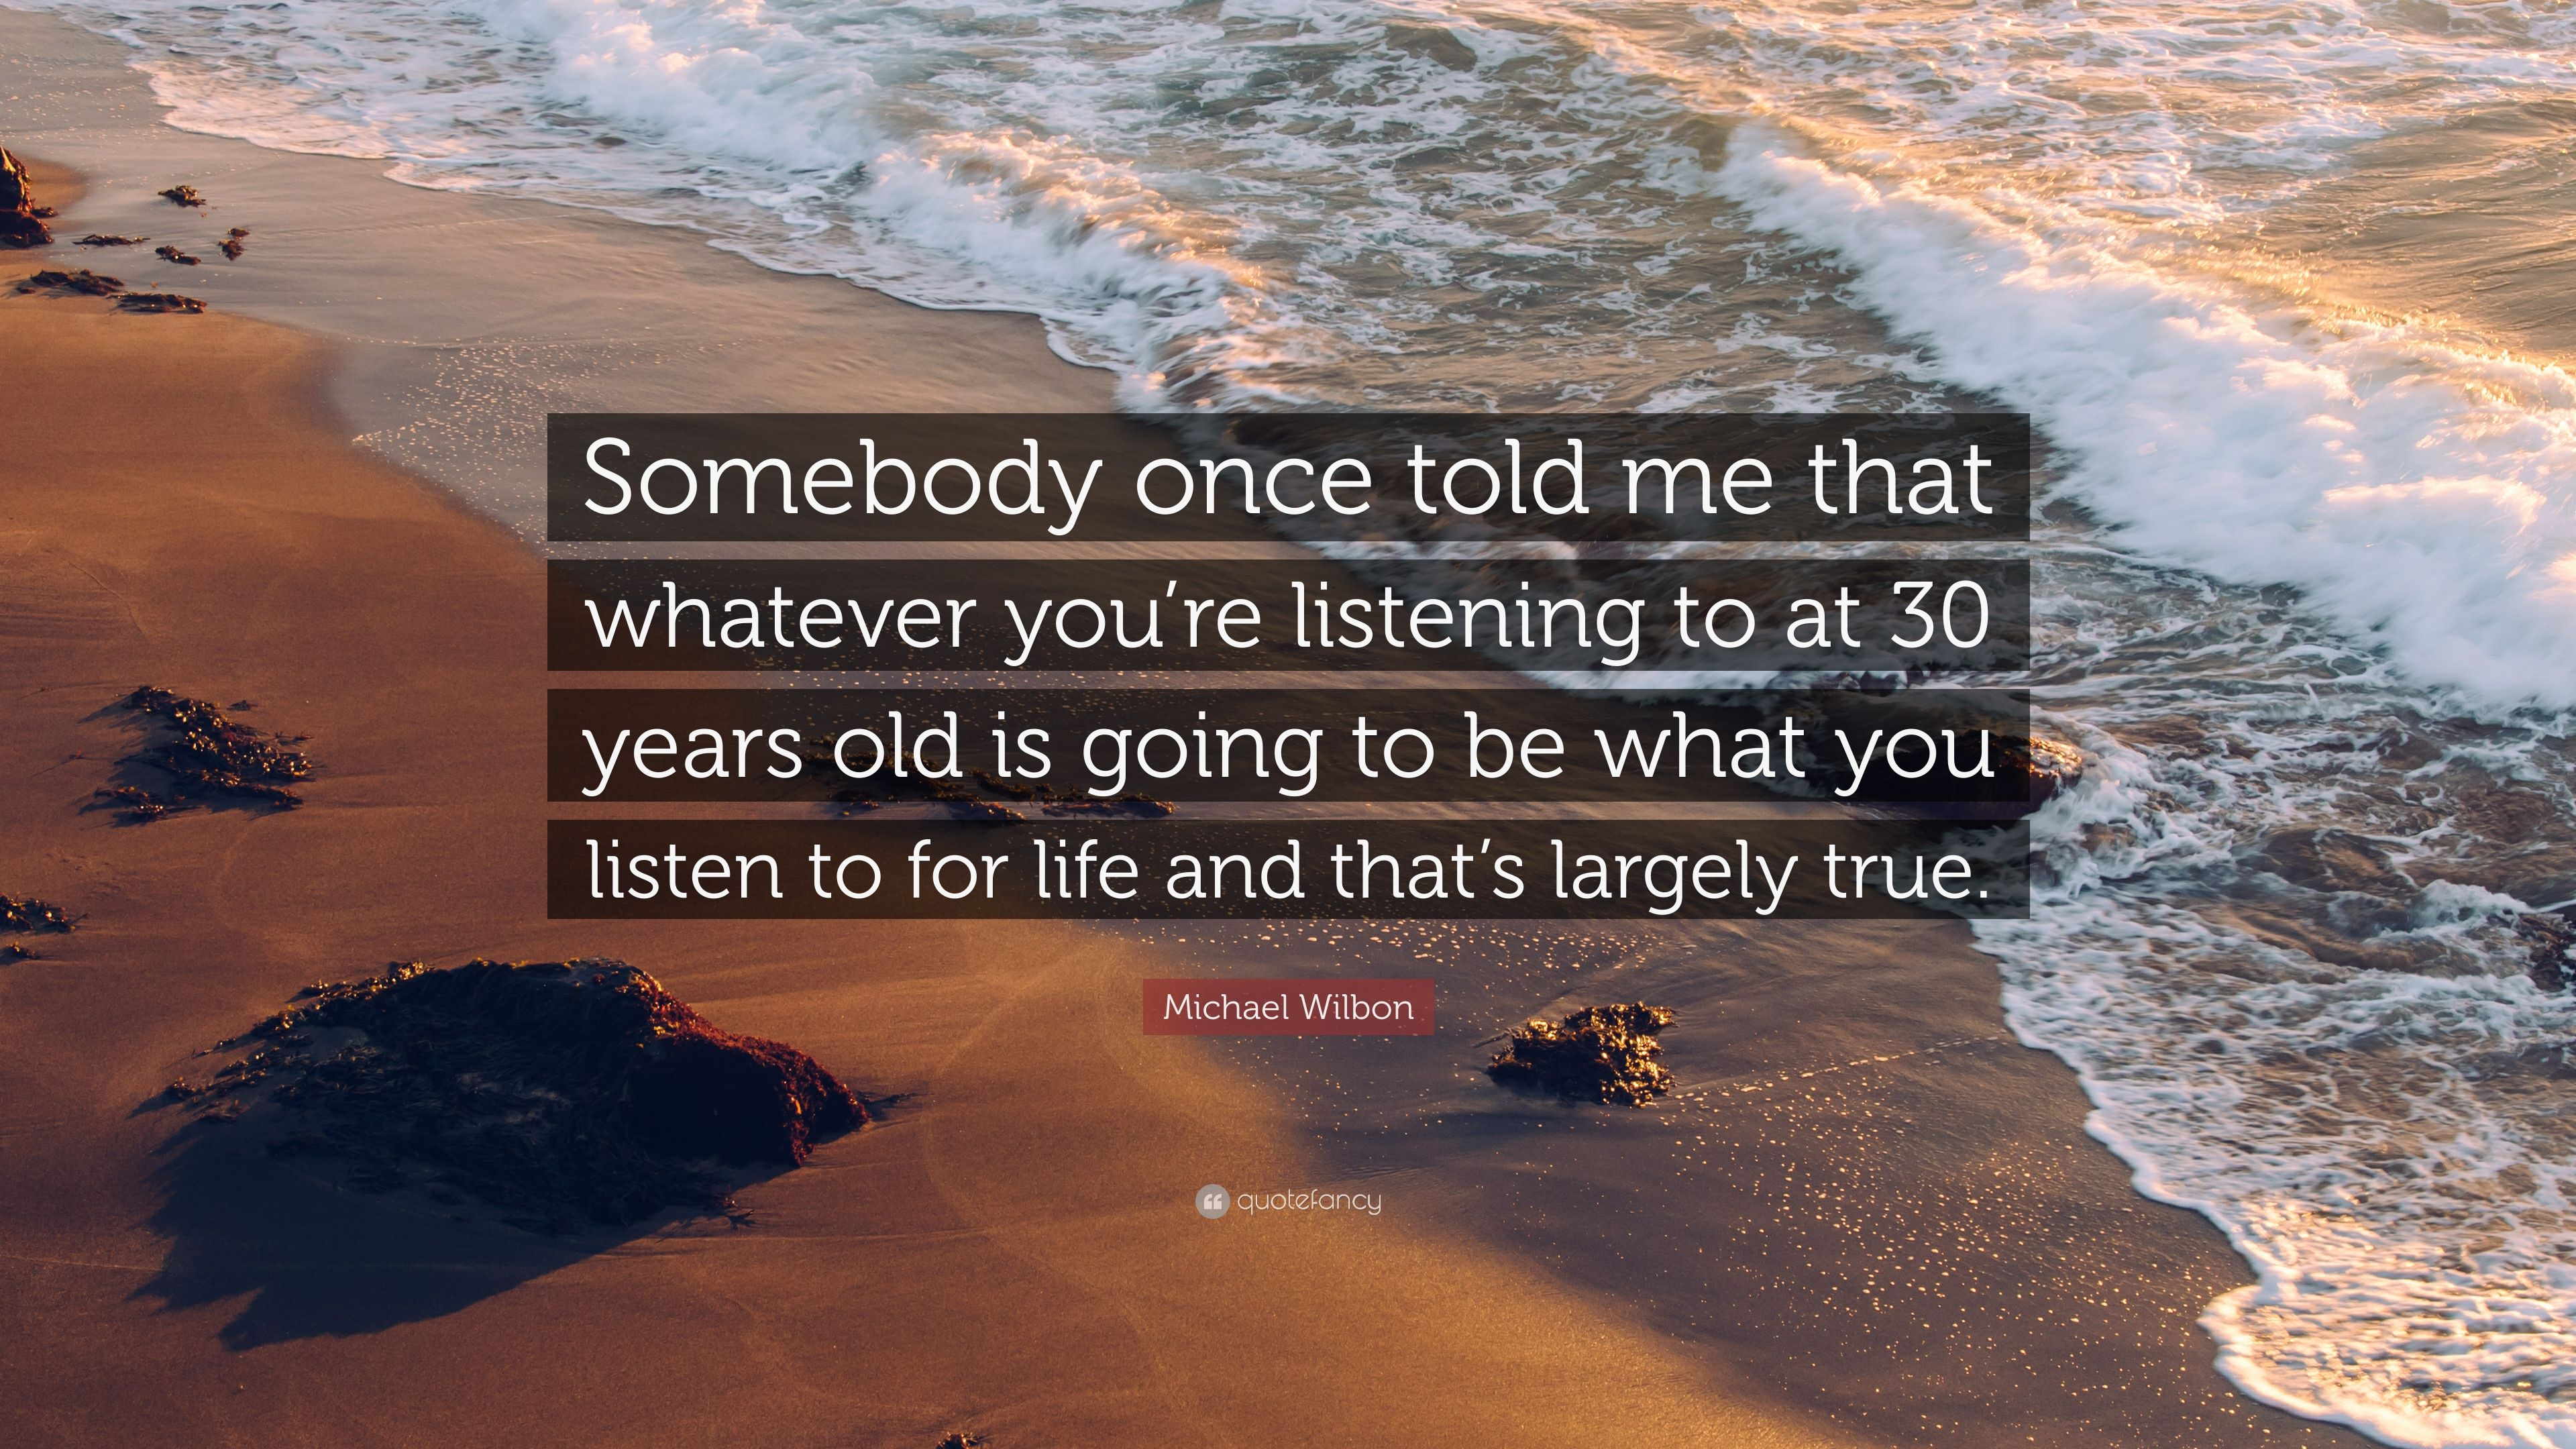 Marvelous Michael Wilbon Quote: U201cSomebody Once Told Me That Whatever Youu0027re Listening  To